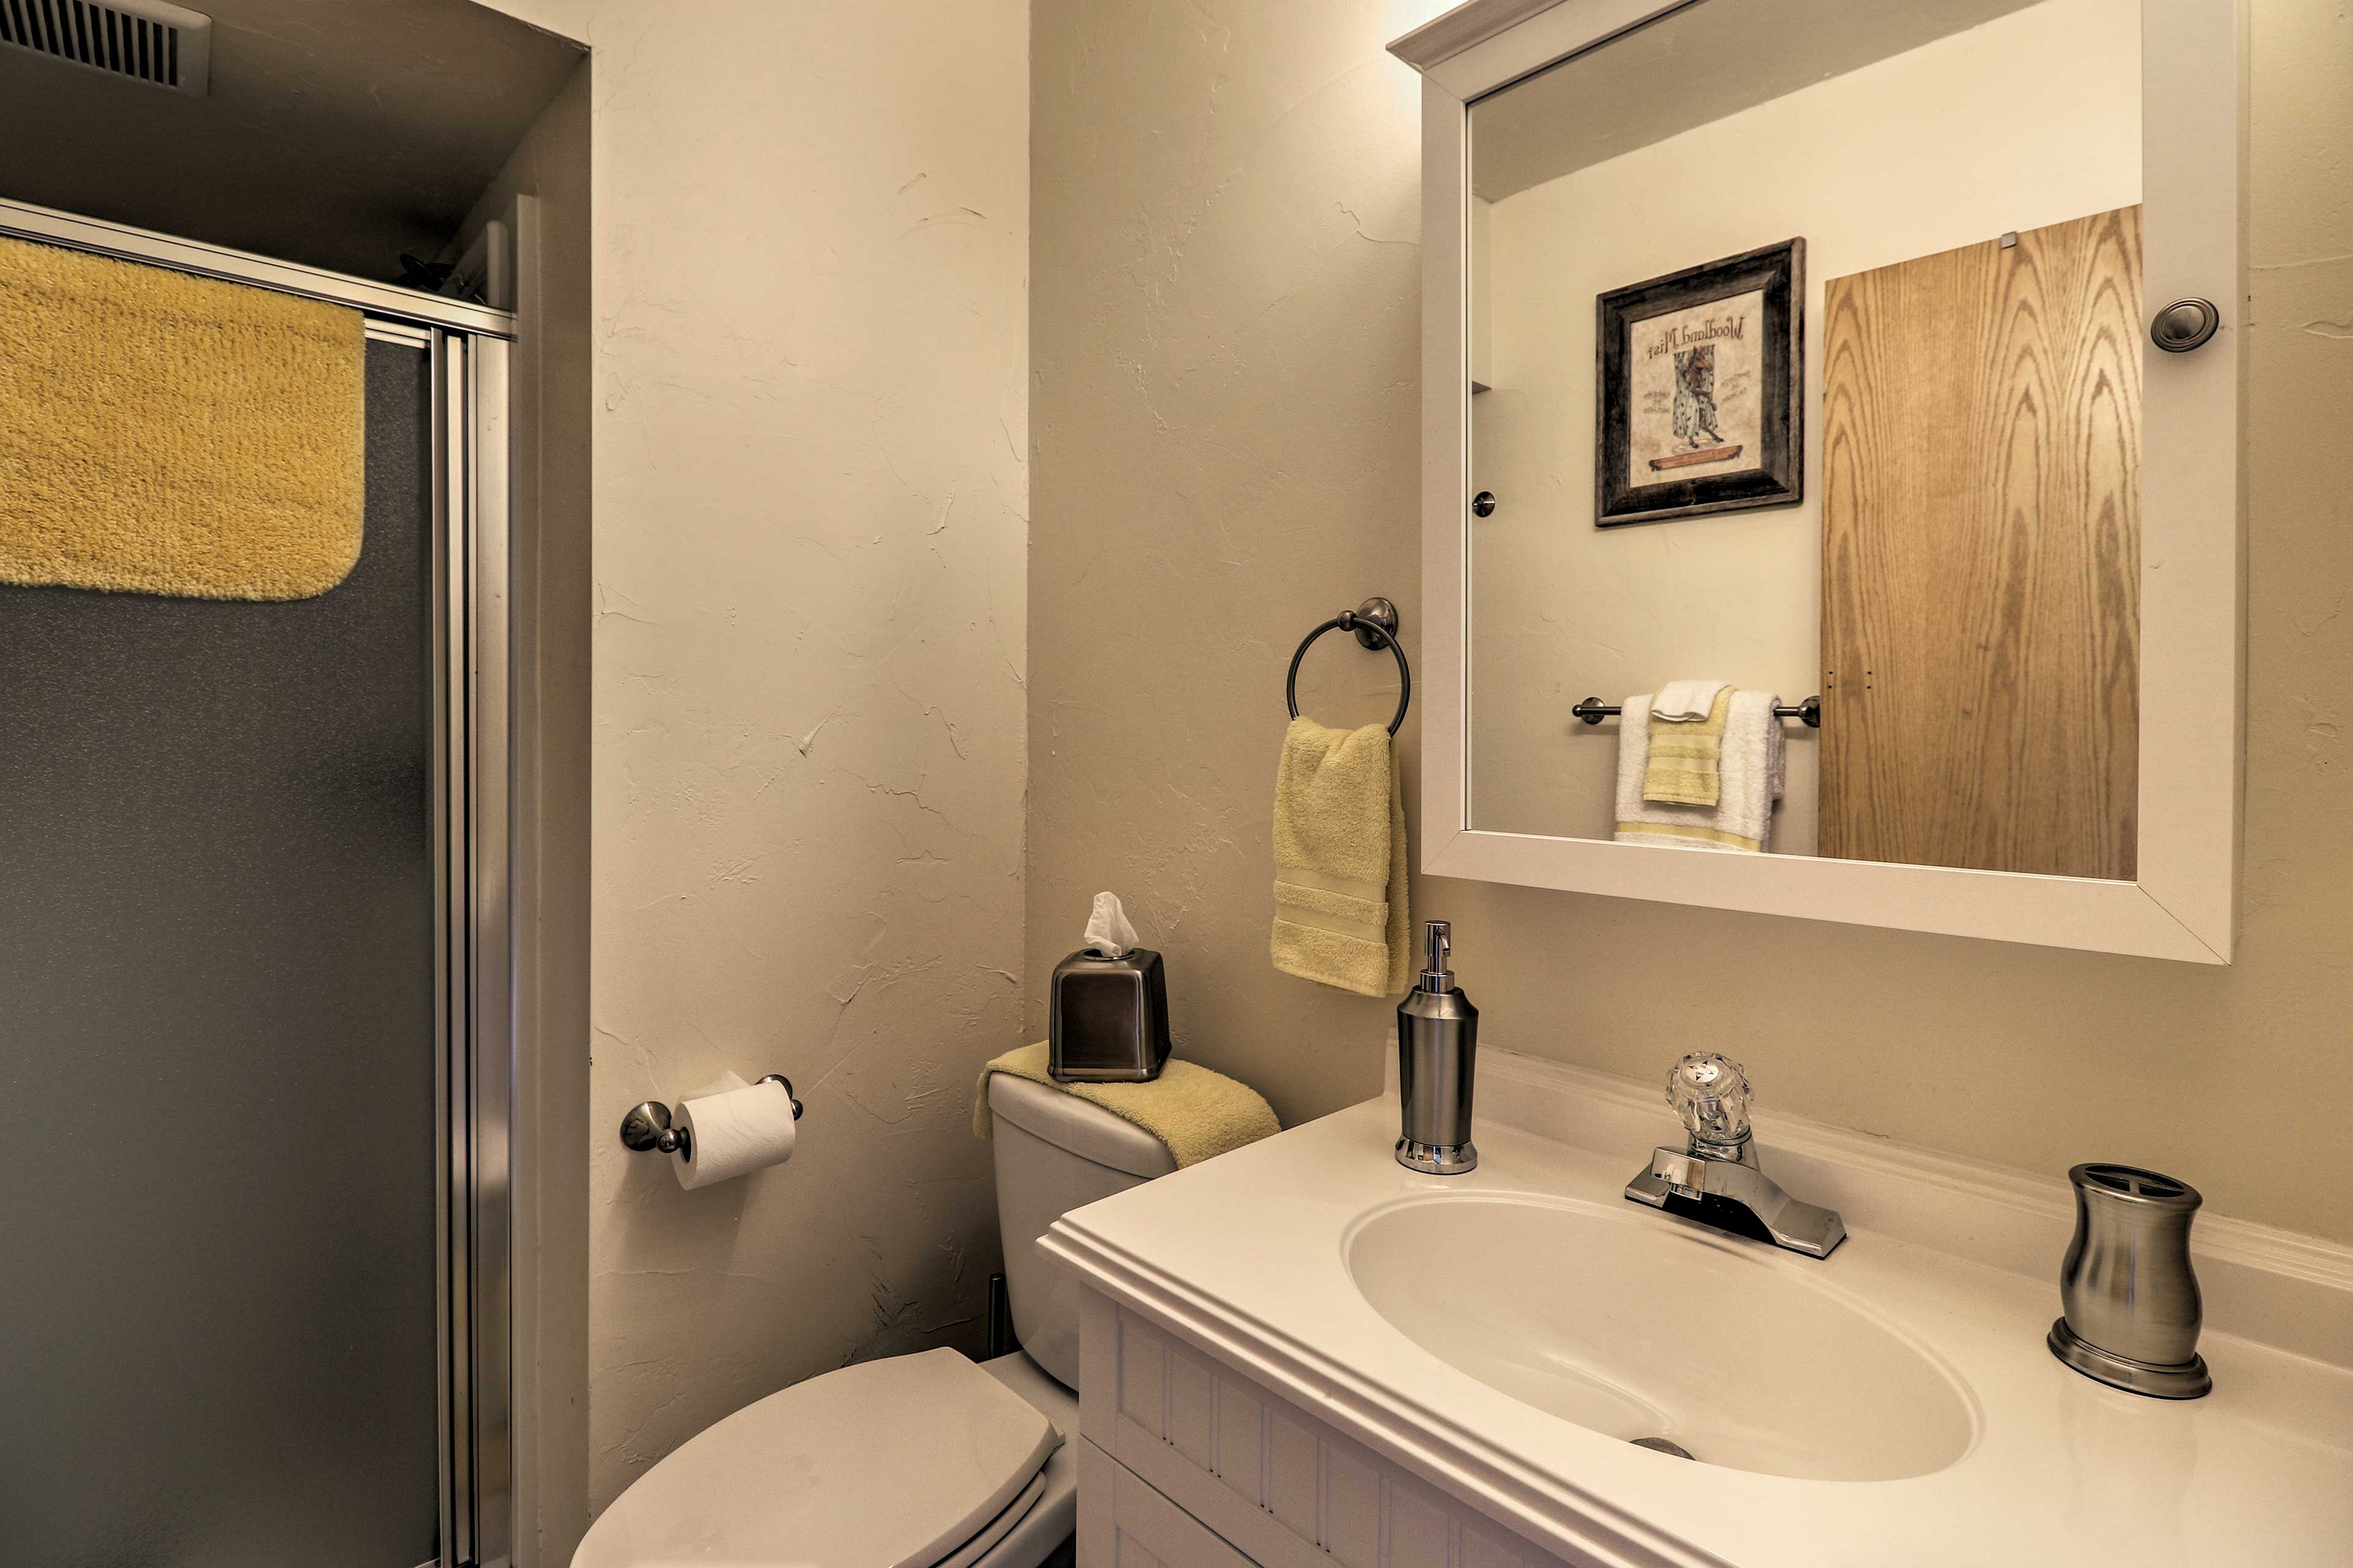 Set in the corner, the full bathroom features a shower.